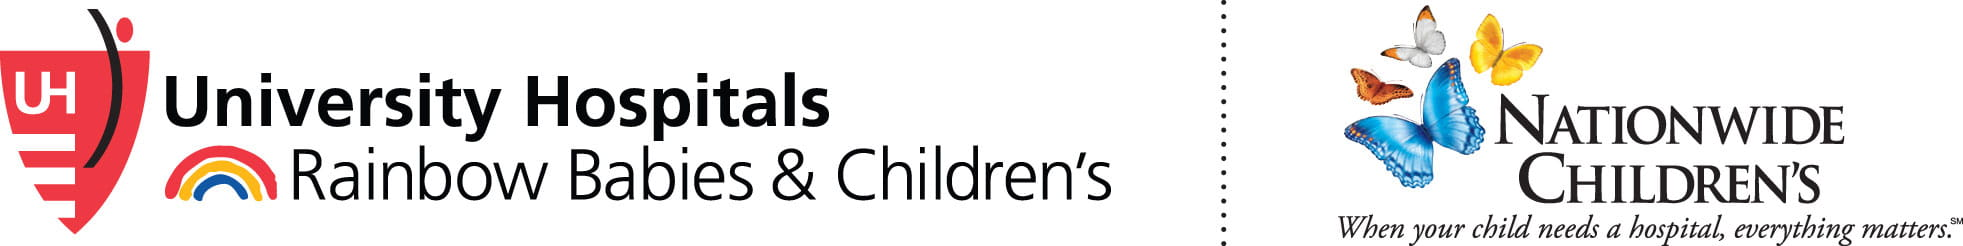 UH Rainbow Babies & Children's and Nationwide Children's logo